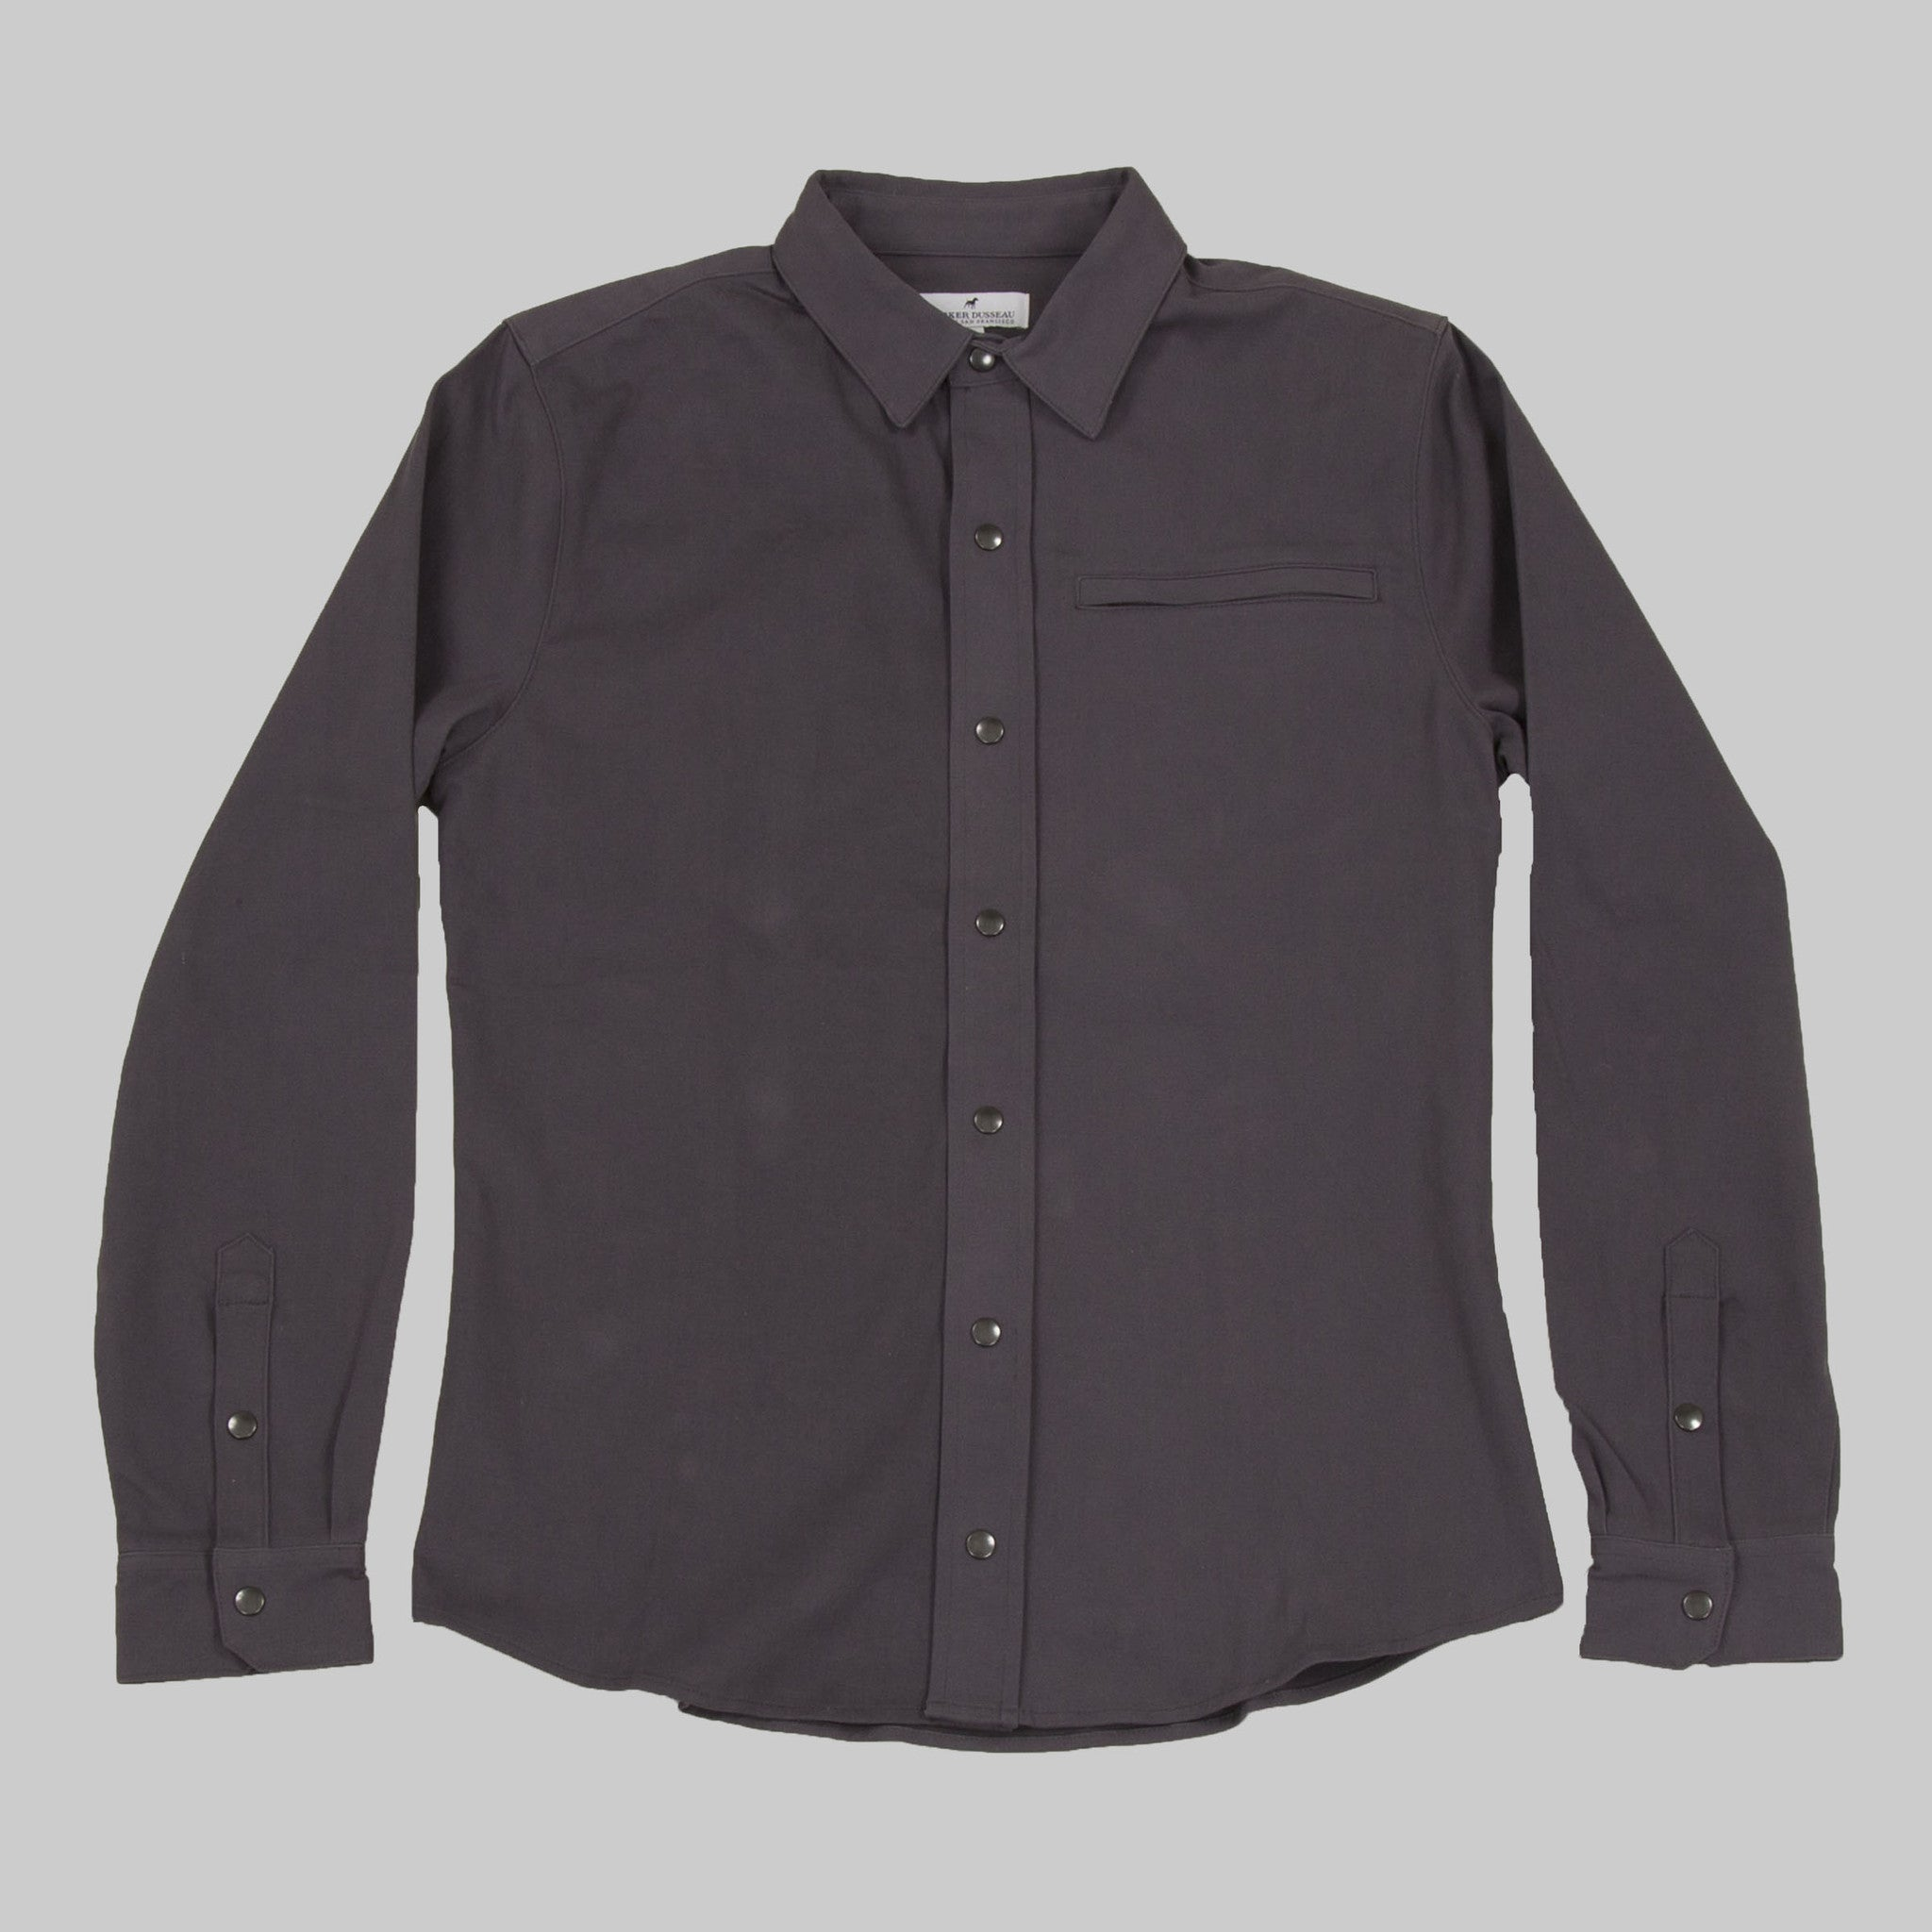 Seadrift Nanosphere Overshirt - Fog Overshirt- Parker Dusseau : Functional Menswear Essentials for the Always Ready Lifestyle. Based in San Francisco, California